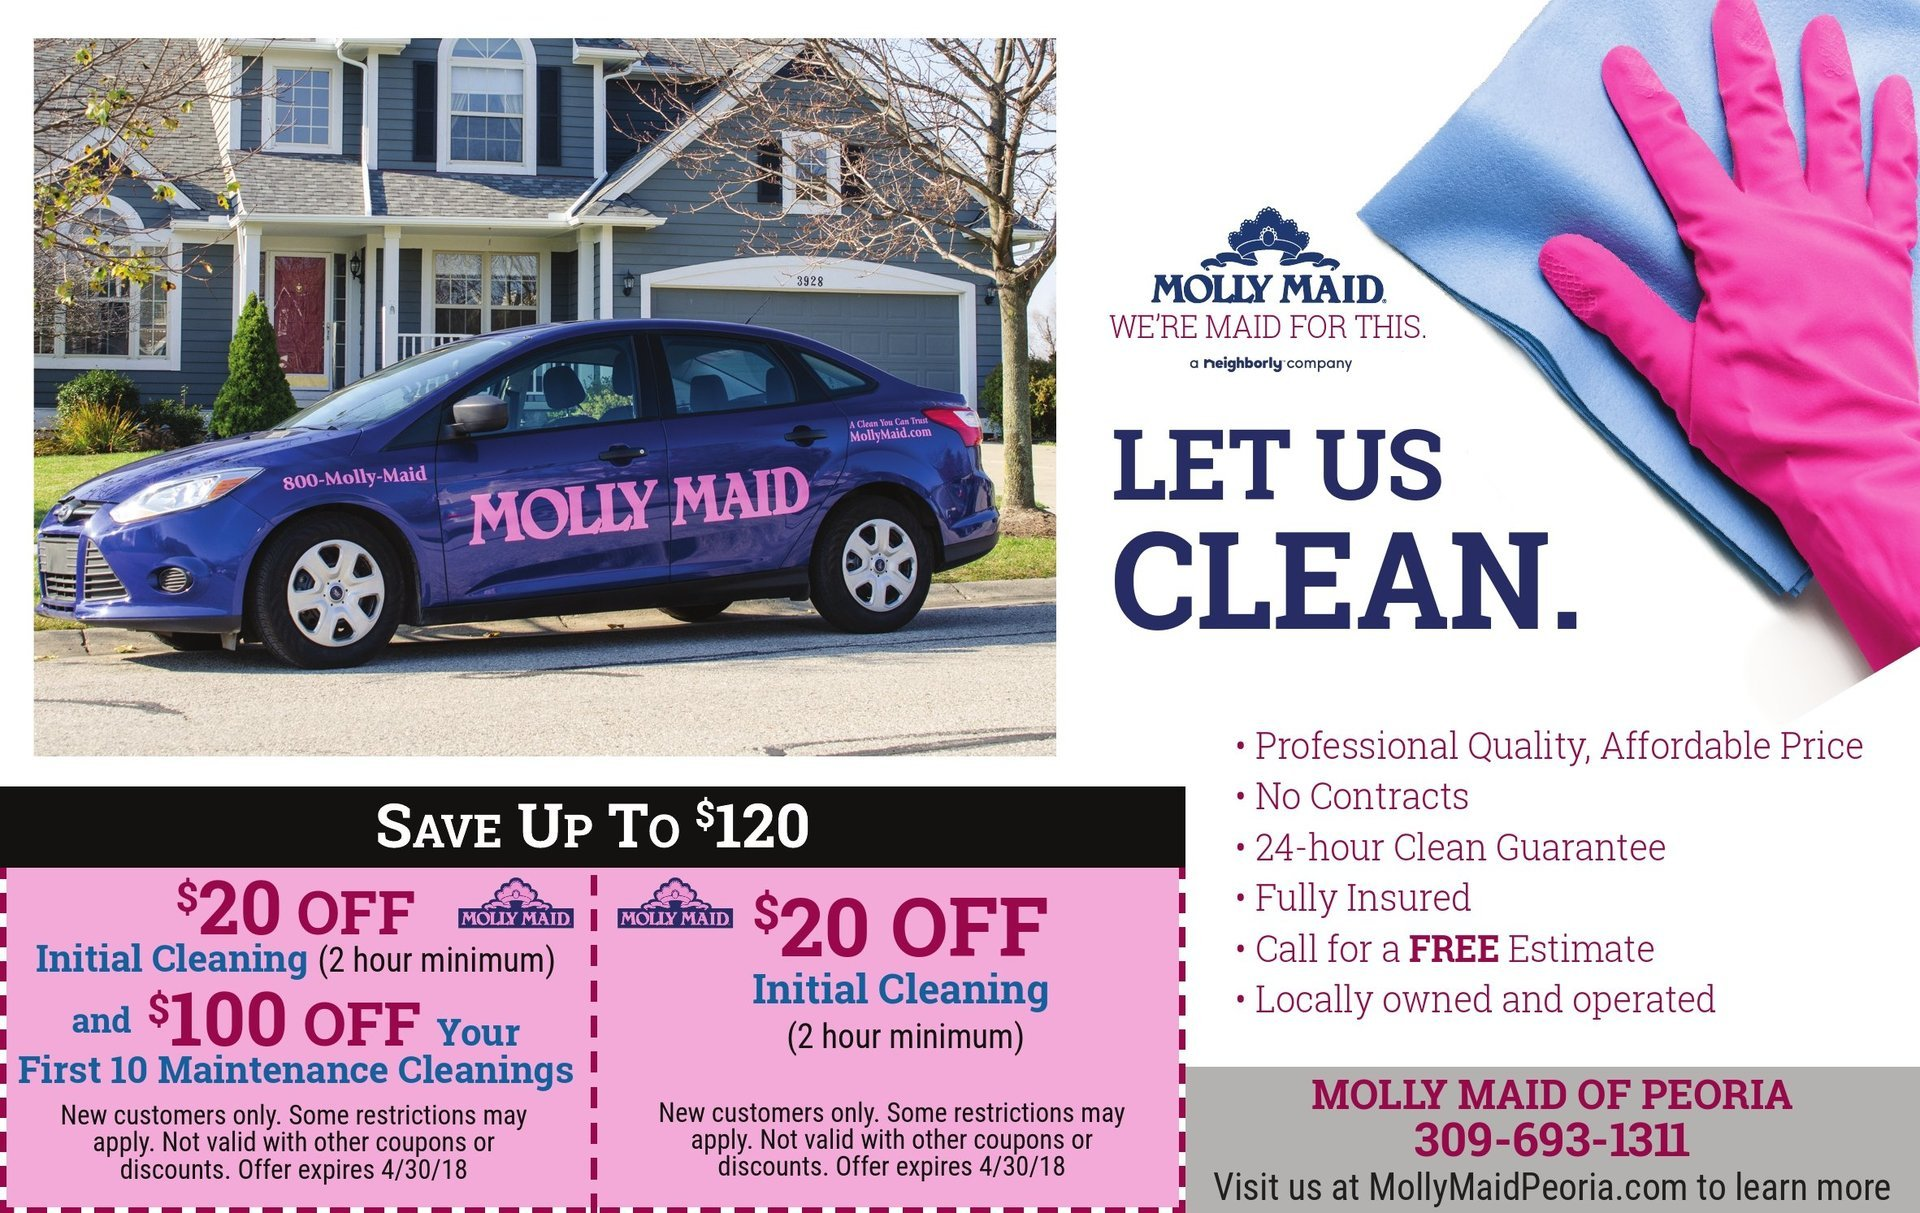 Molly Maid house home cleaners coupons serving the tri county area Peoria, IL